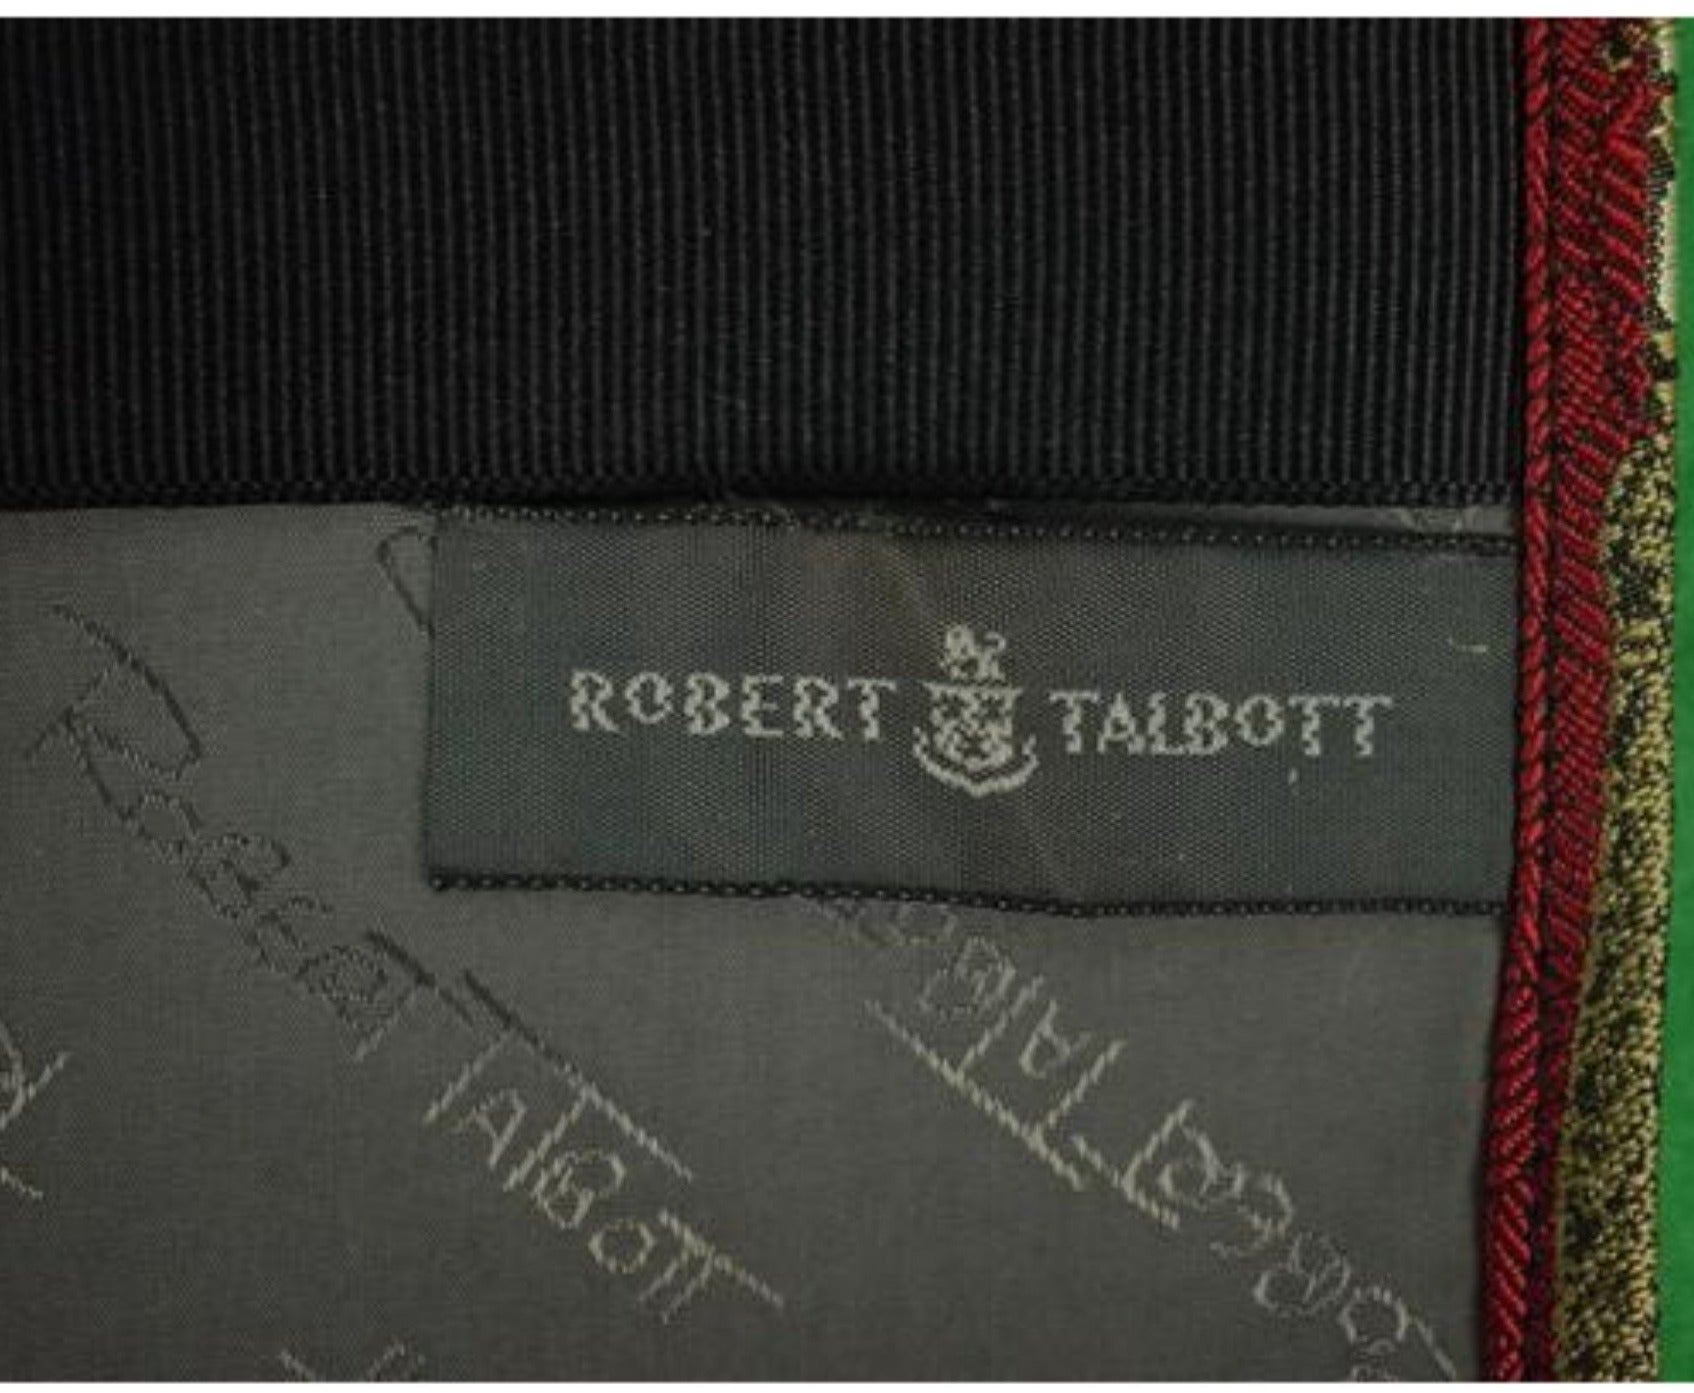 96dbefed93cf 'Robert Talbott Trout Fly 4 Panel Tie Carrier'